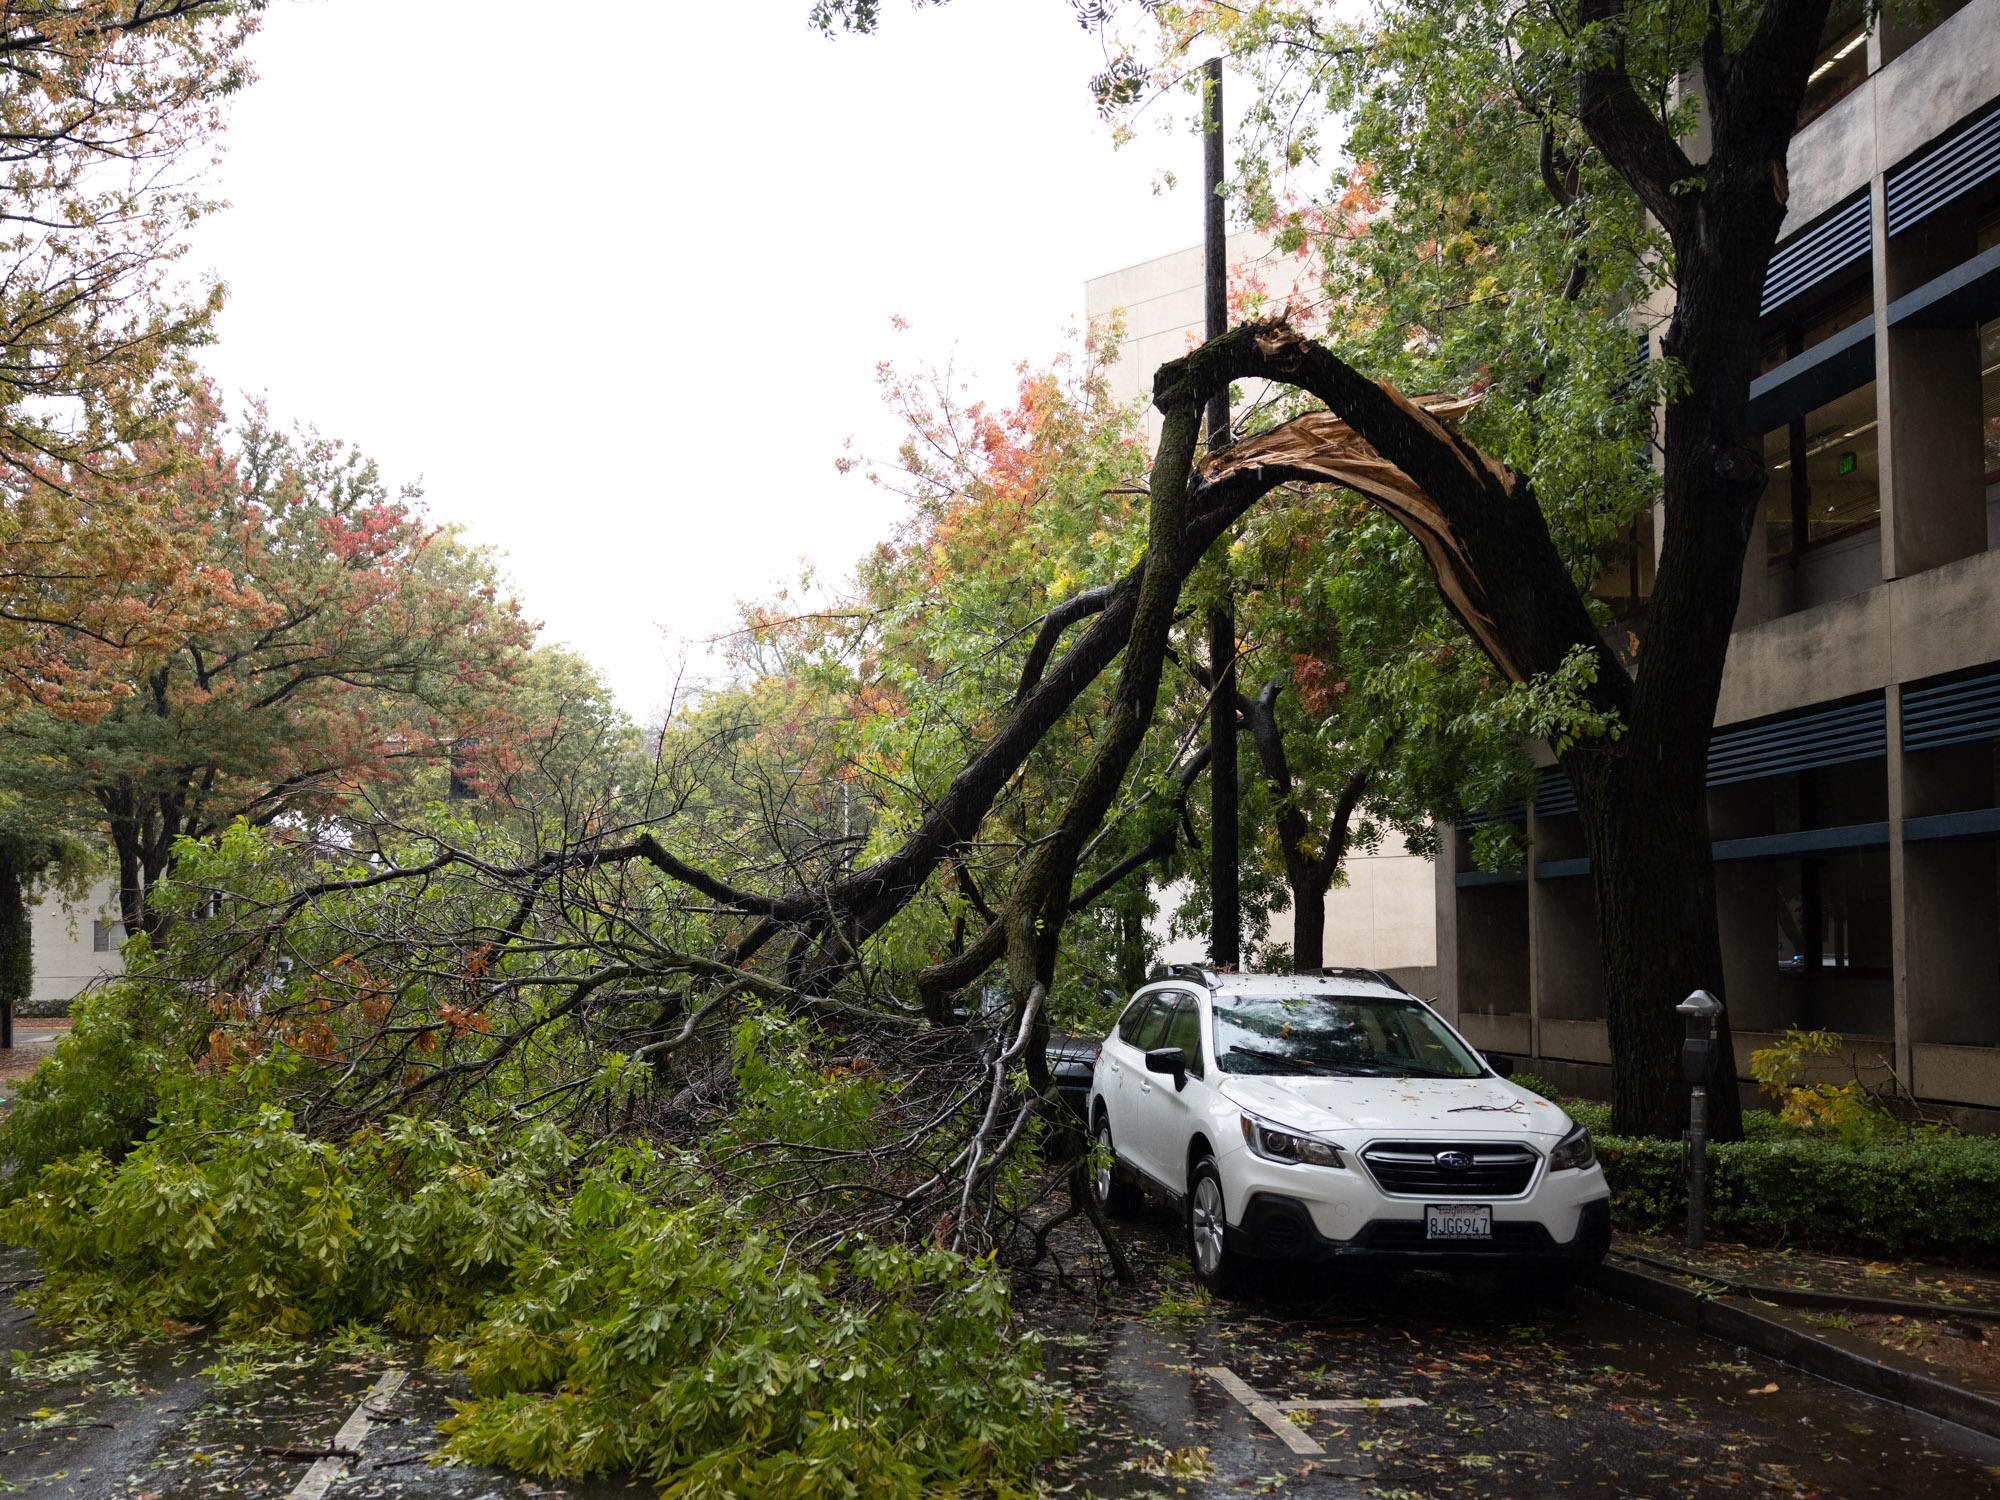 Flooding, power outages, cancellations as relentless storm wallops Sacramento region